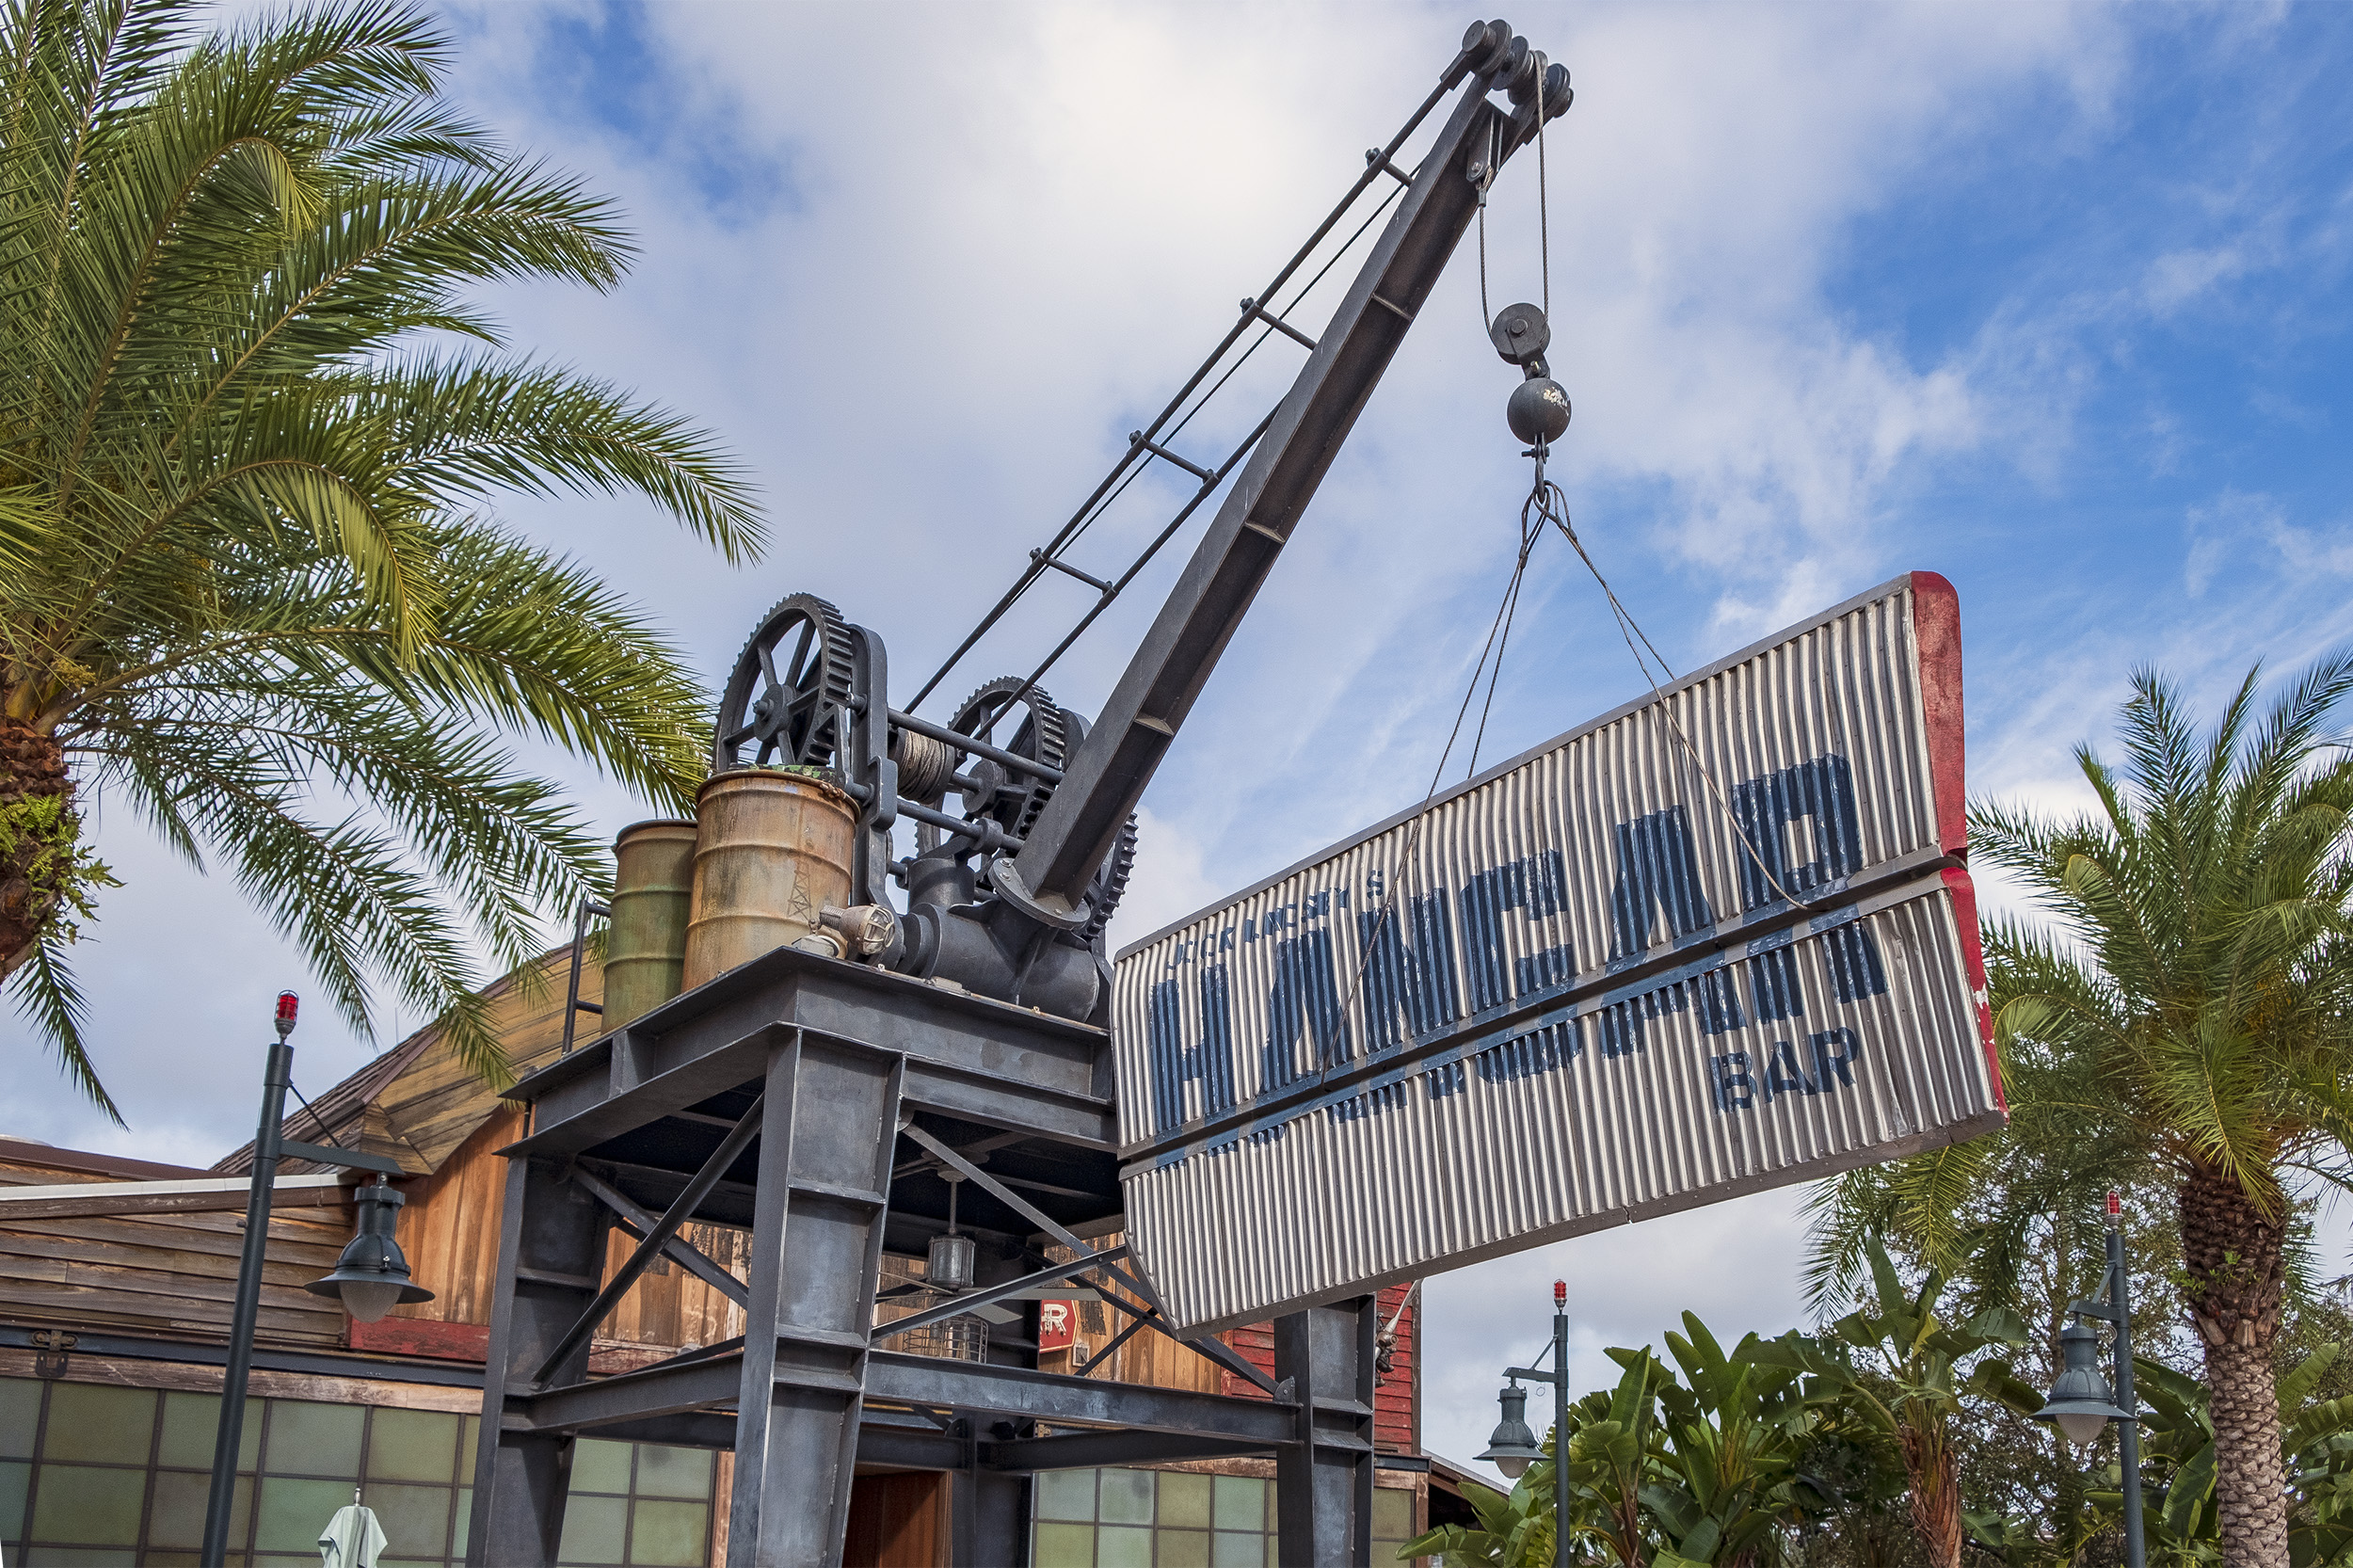 The Hangar Bar Disney Springs